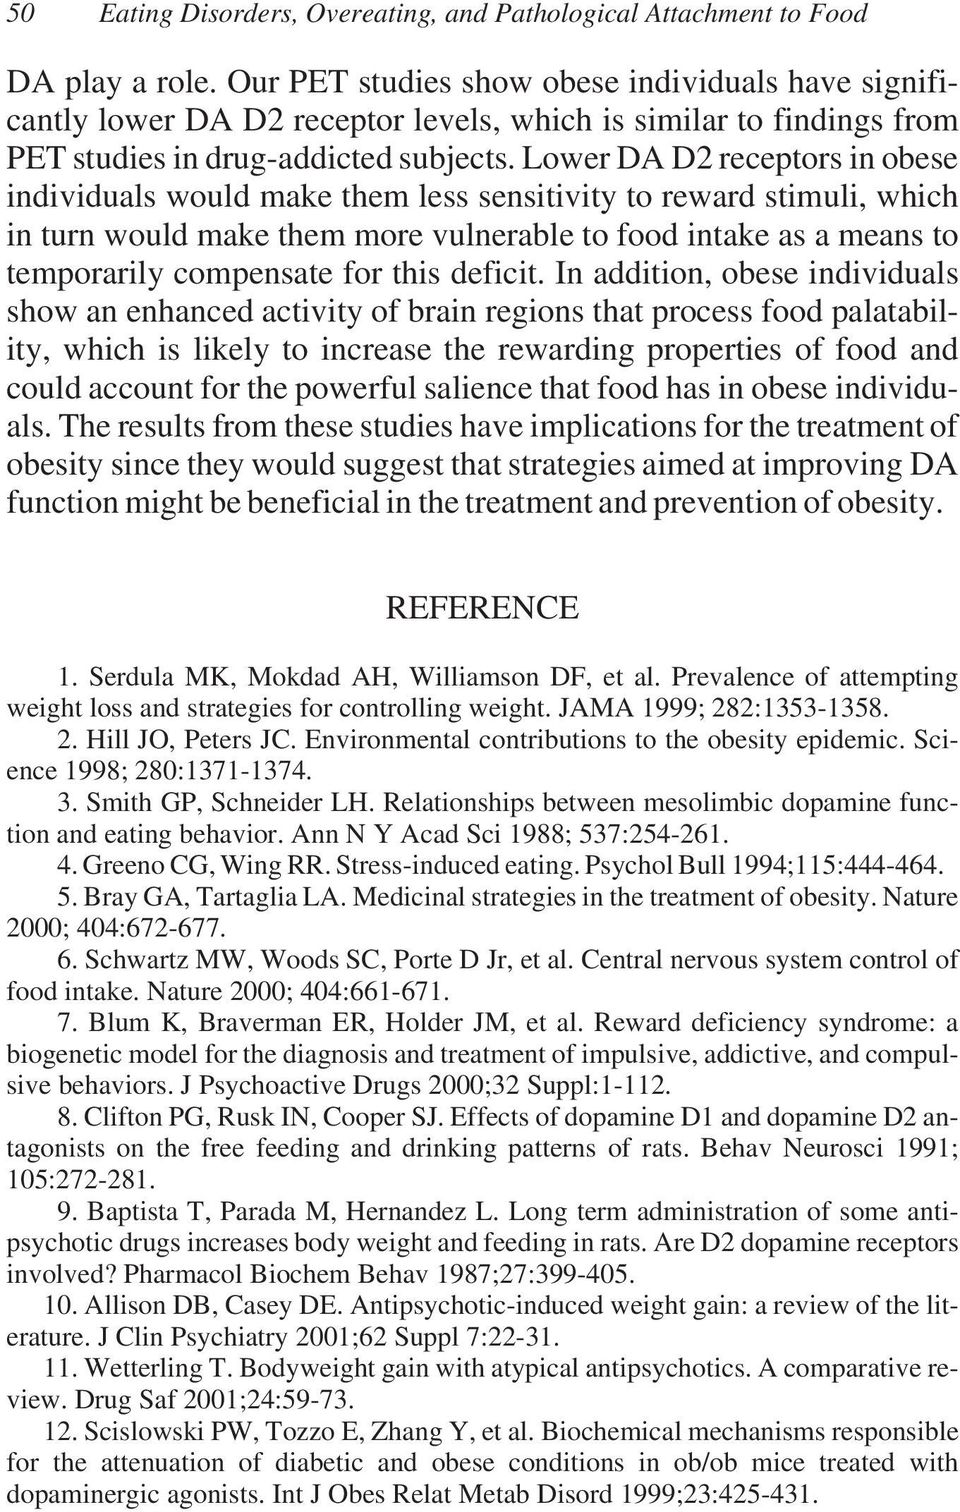 Lower DA D2 receptors in obese individuals would make them less sensitivity to reward stimuli, which in turn would make them more vulnerable to food intake as a means to temporarily compensate for